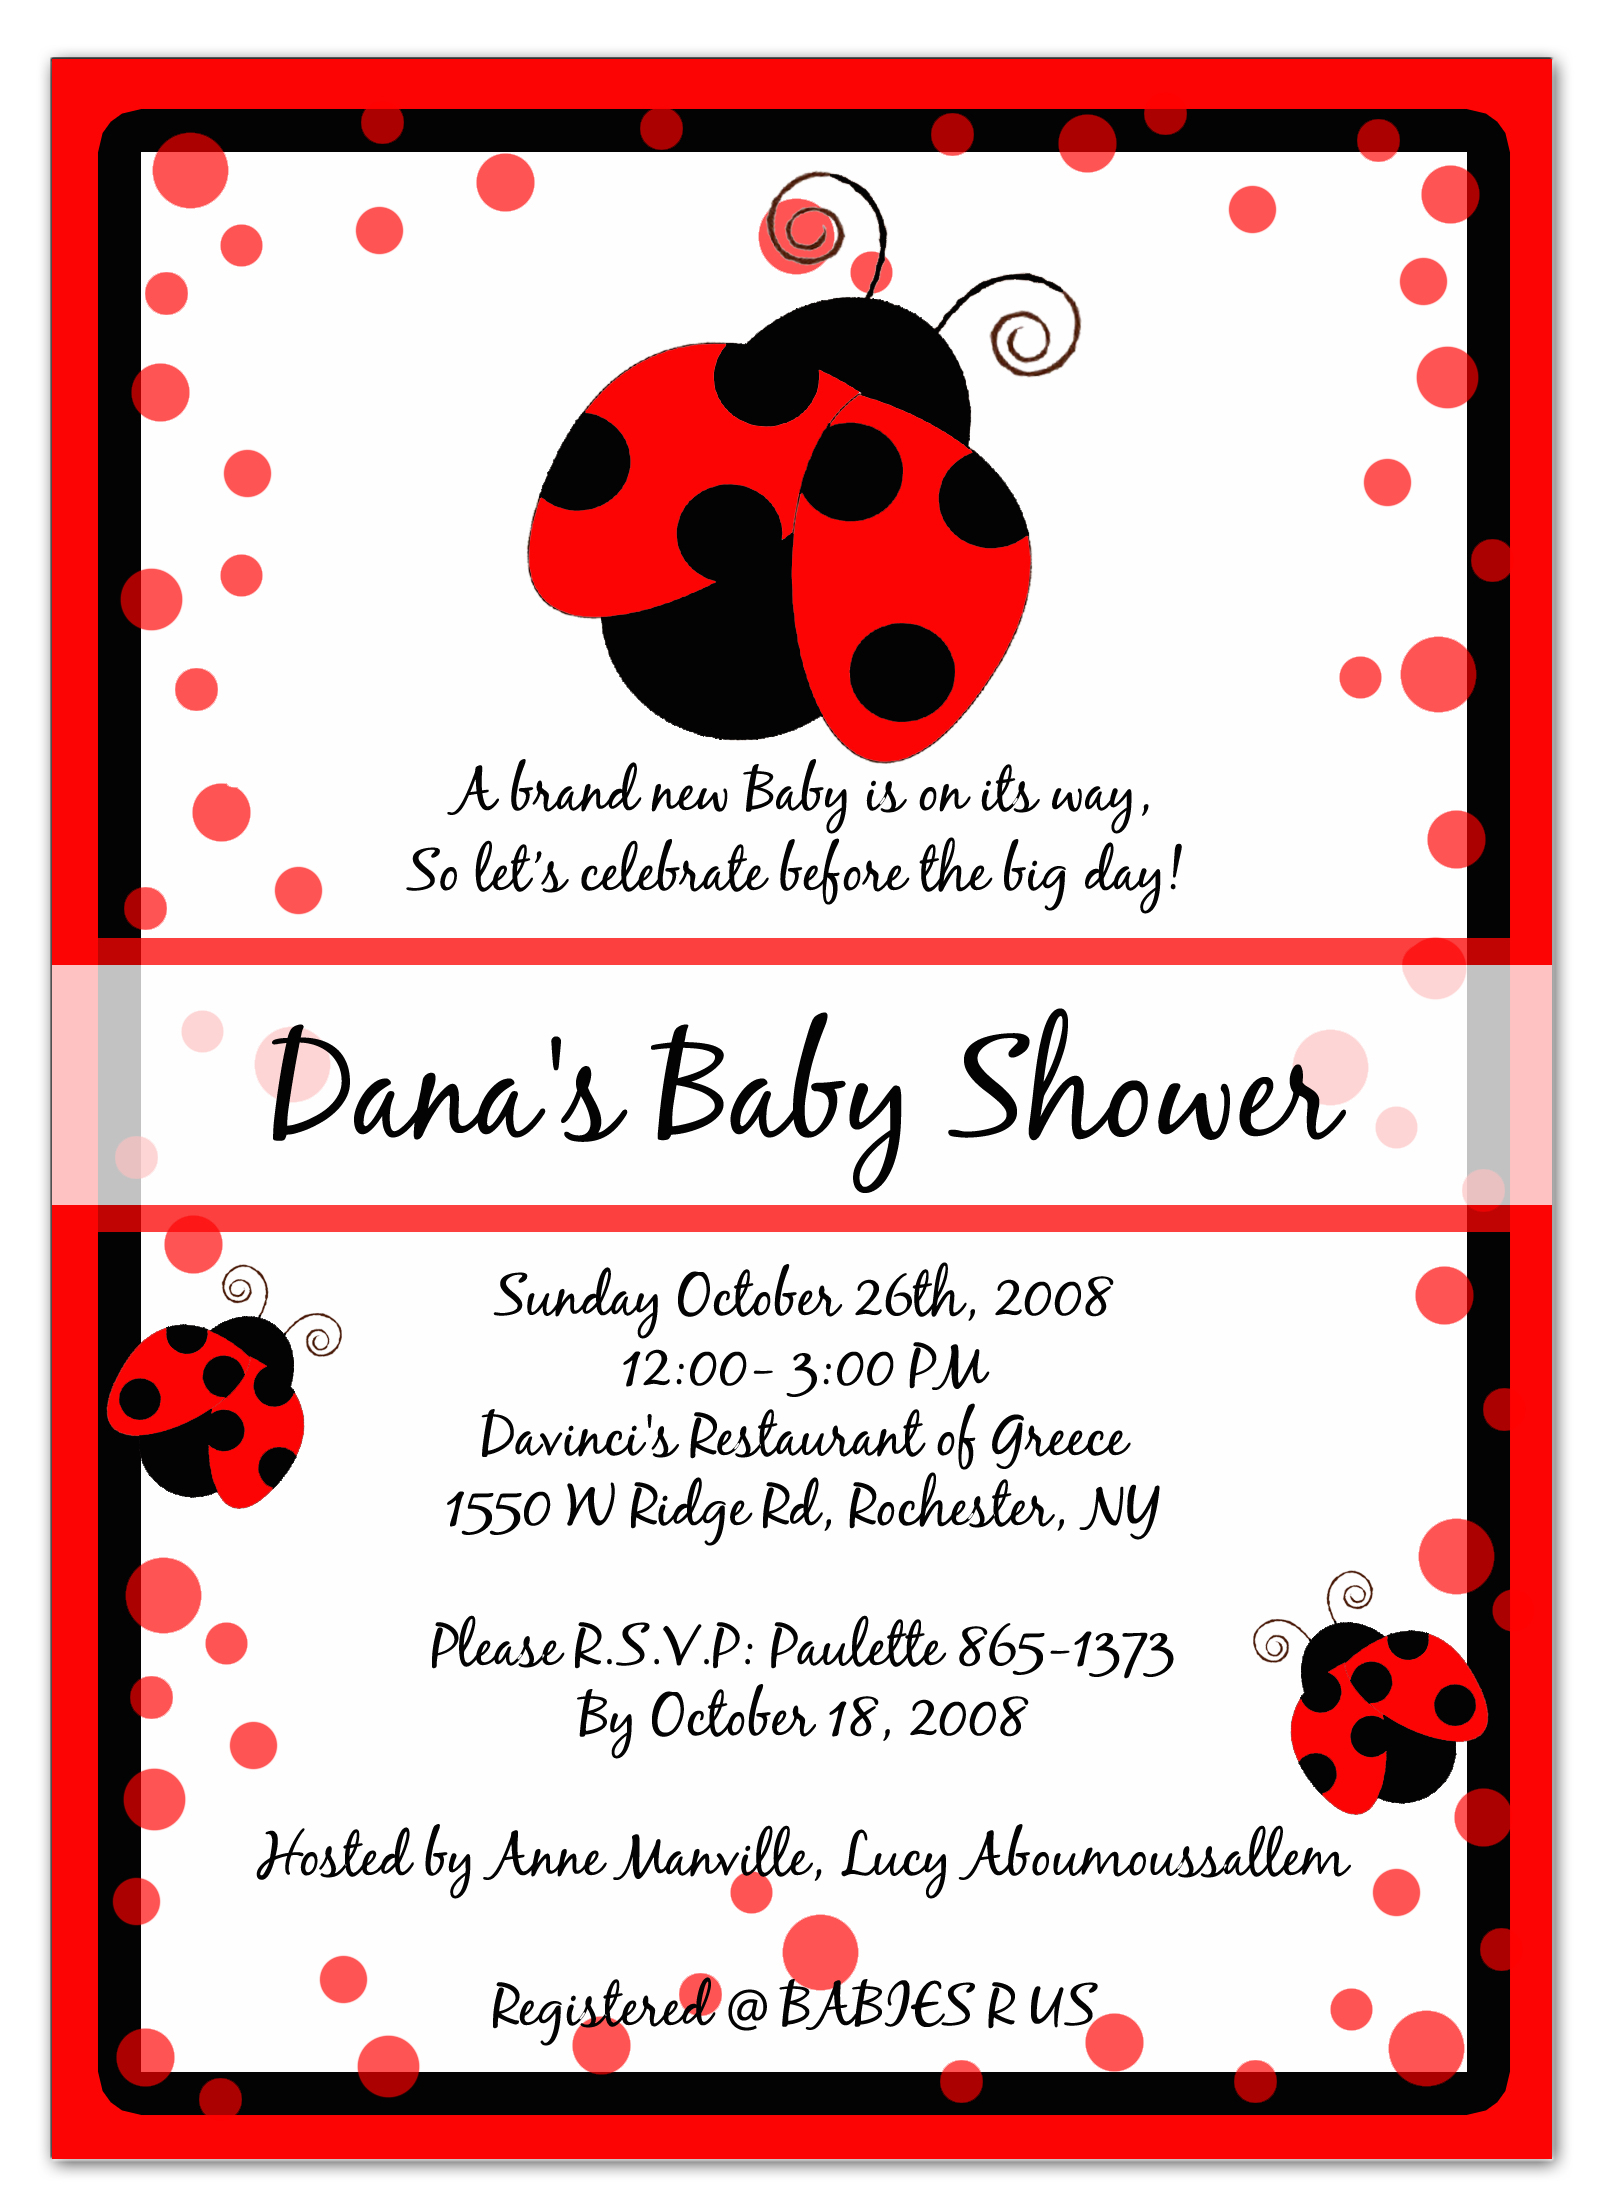 Photo : Te Shower Invitation Jpg Image - Free Printable Ladybug Baby Shower Invitations Templates